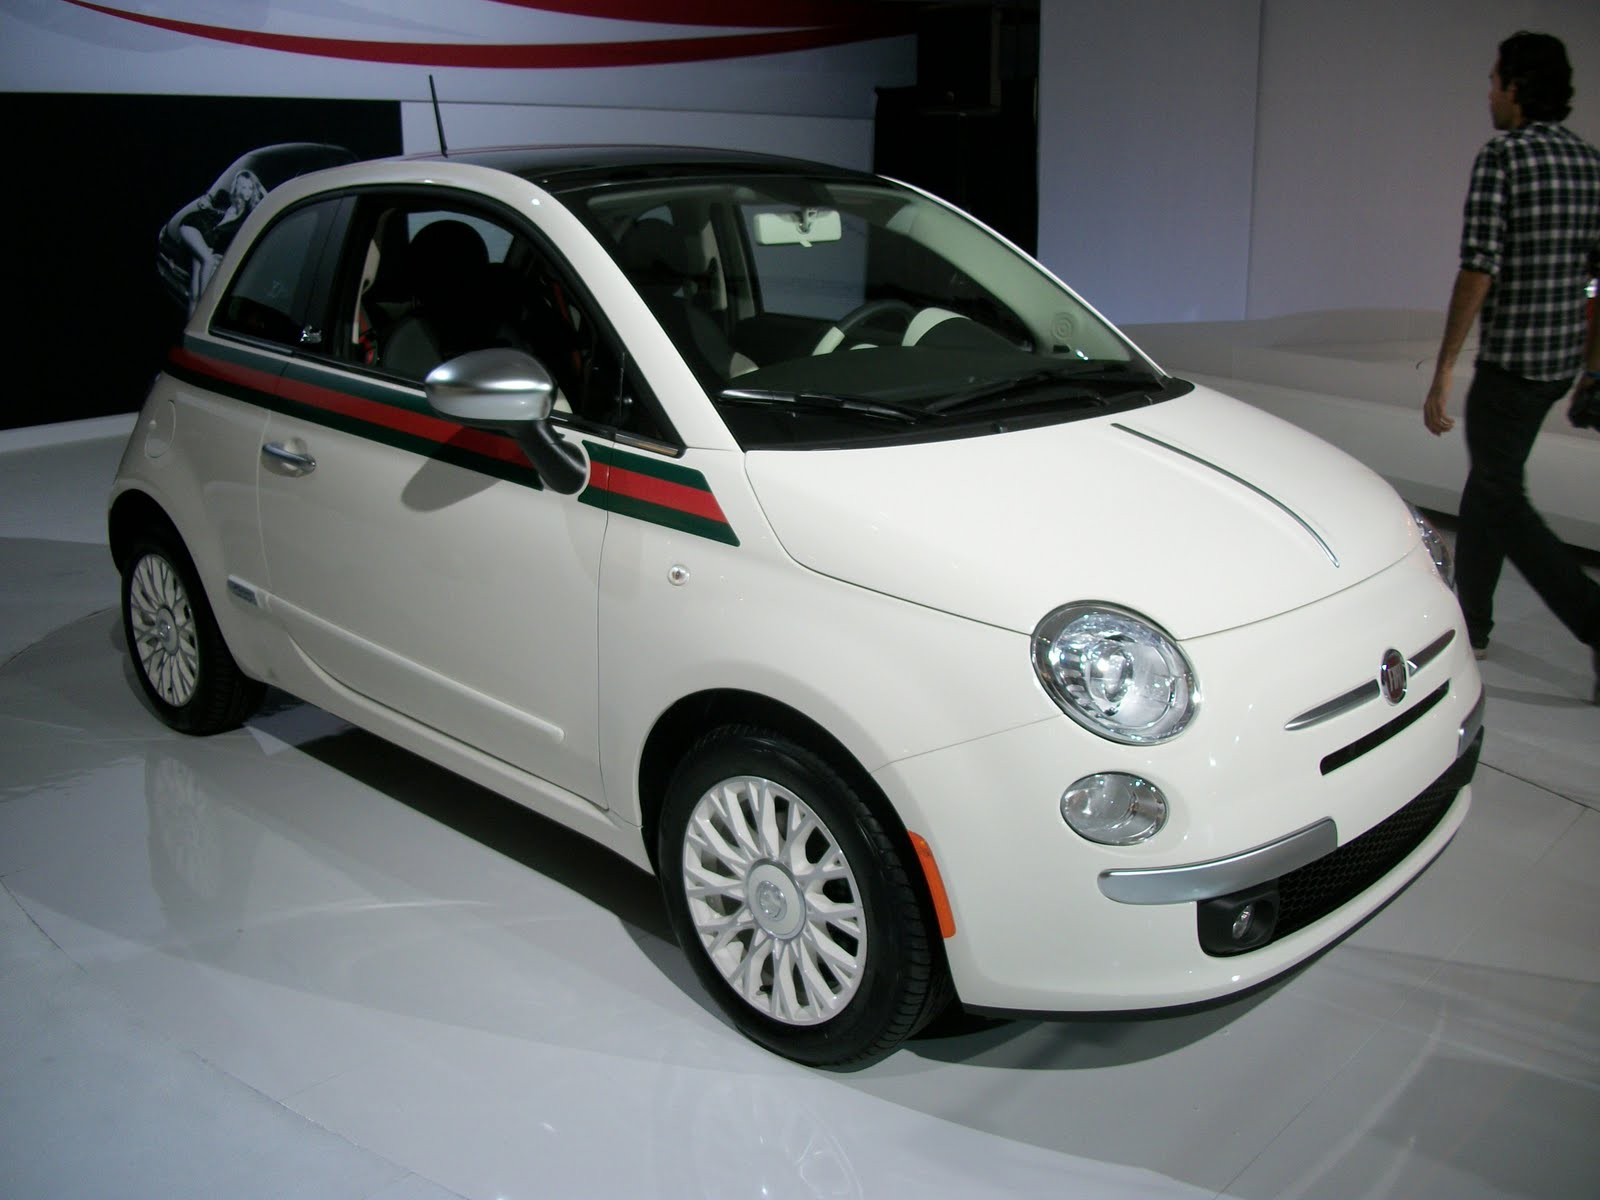 Fiat Of Palm Springs >> Palm Springs Automobilist: Fiat 500 Gucci: Putting the ...